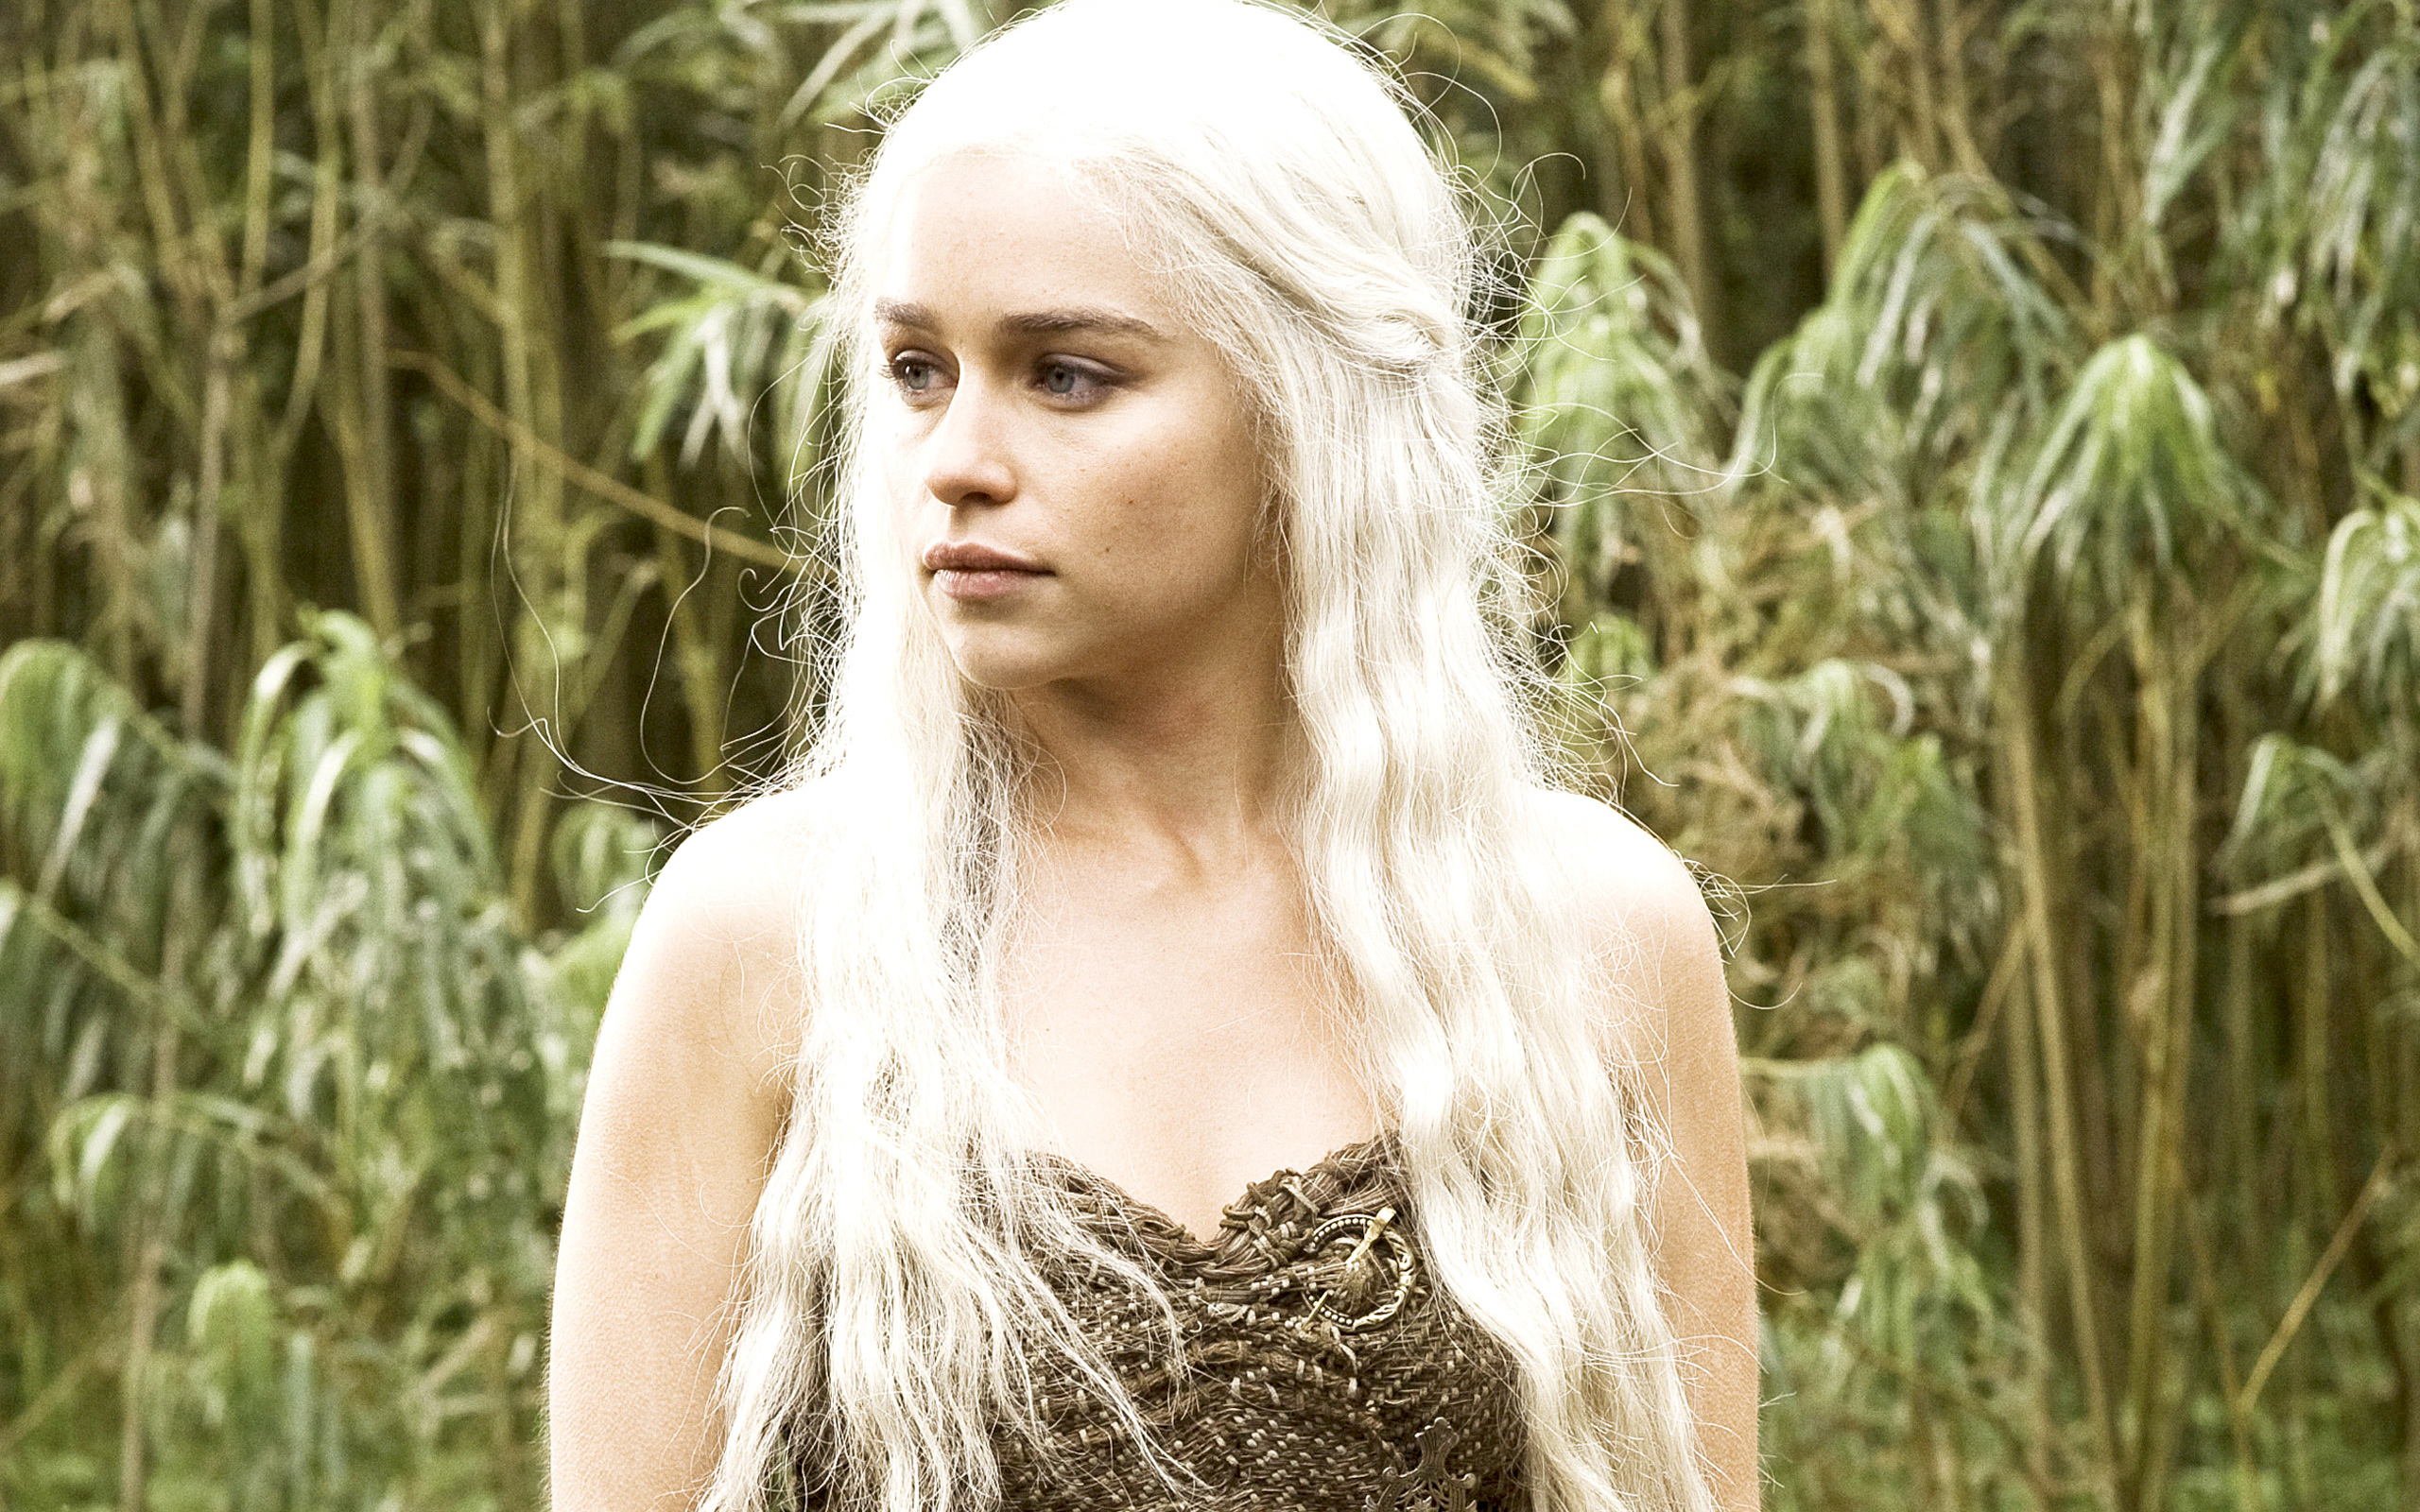 emilia clarke in hbo game of thrones widejpg 2560x1600